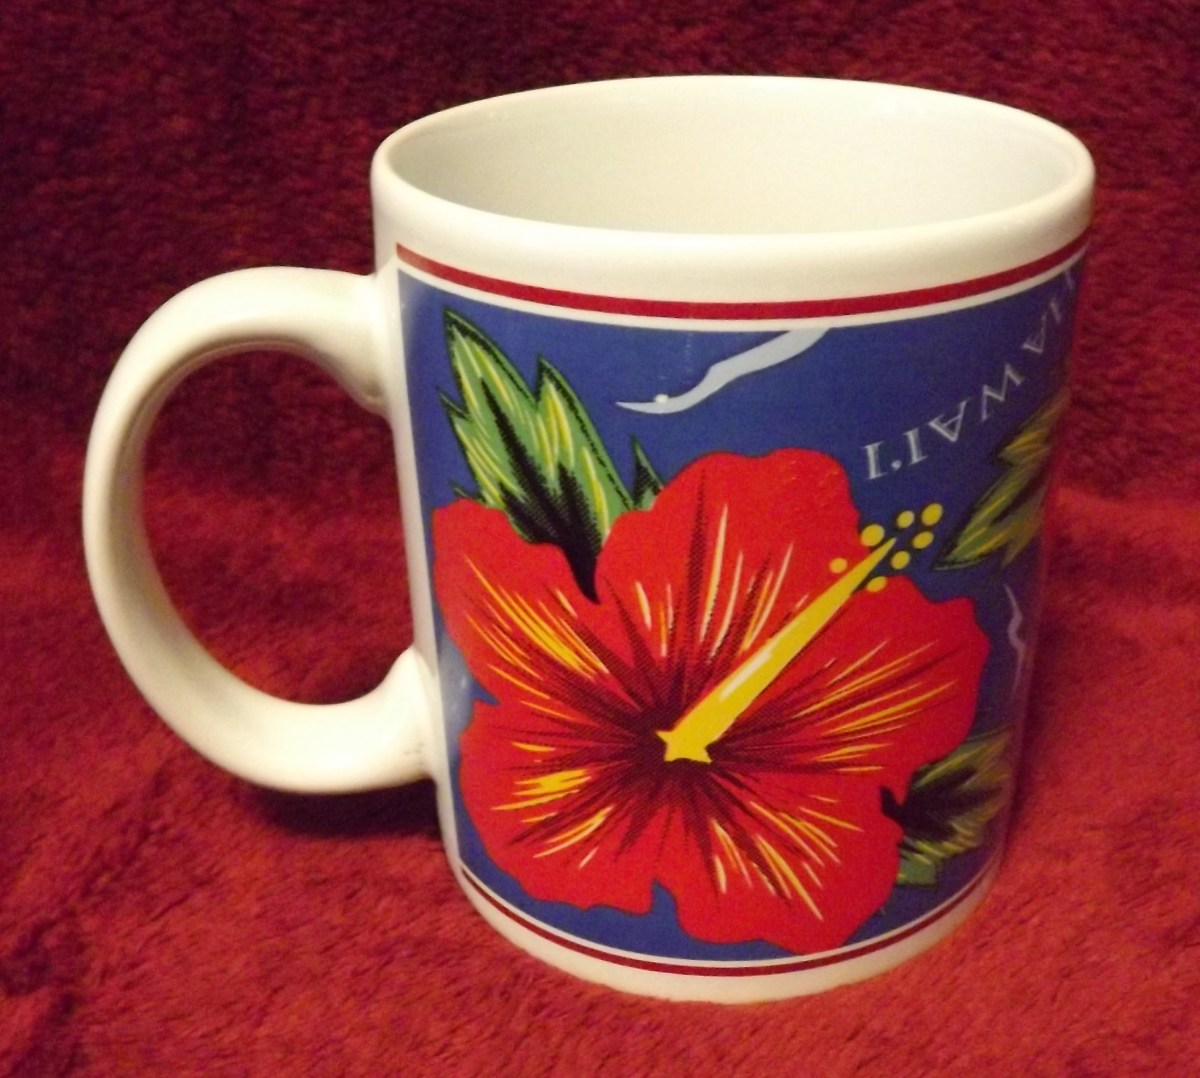 How to Sell Your Mugs on eBay